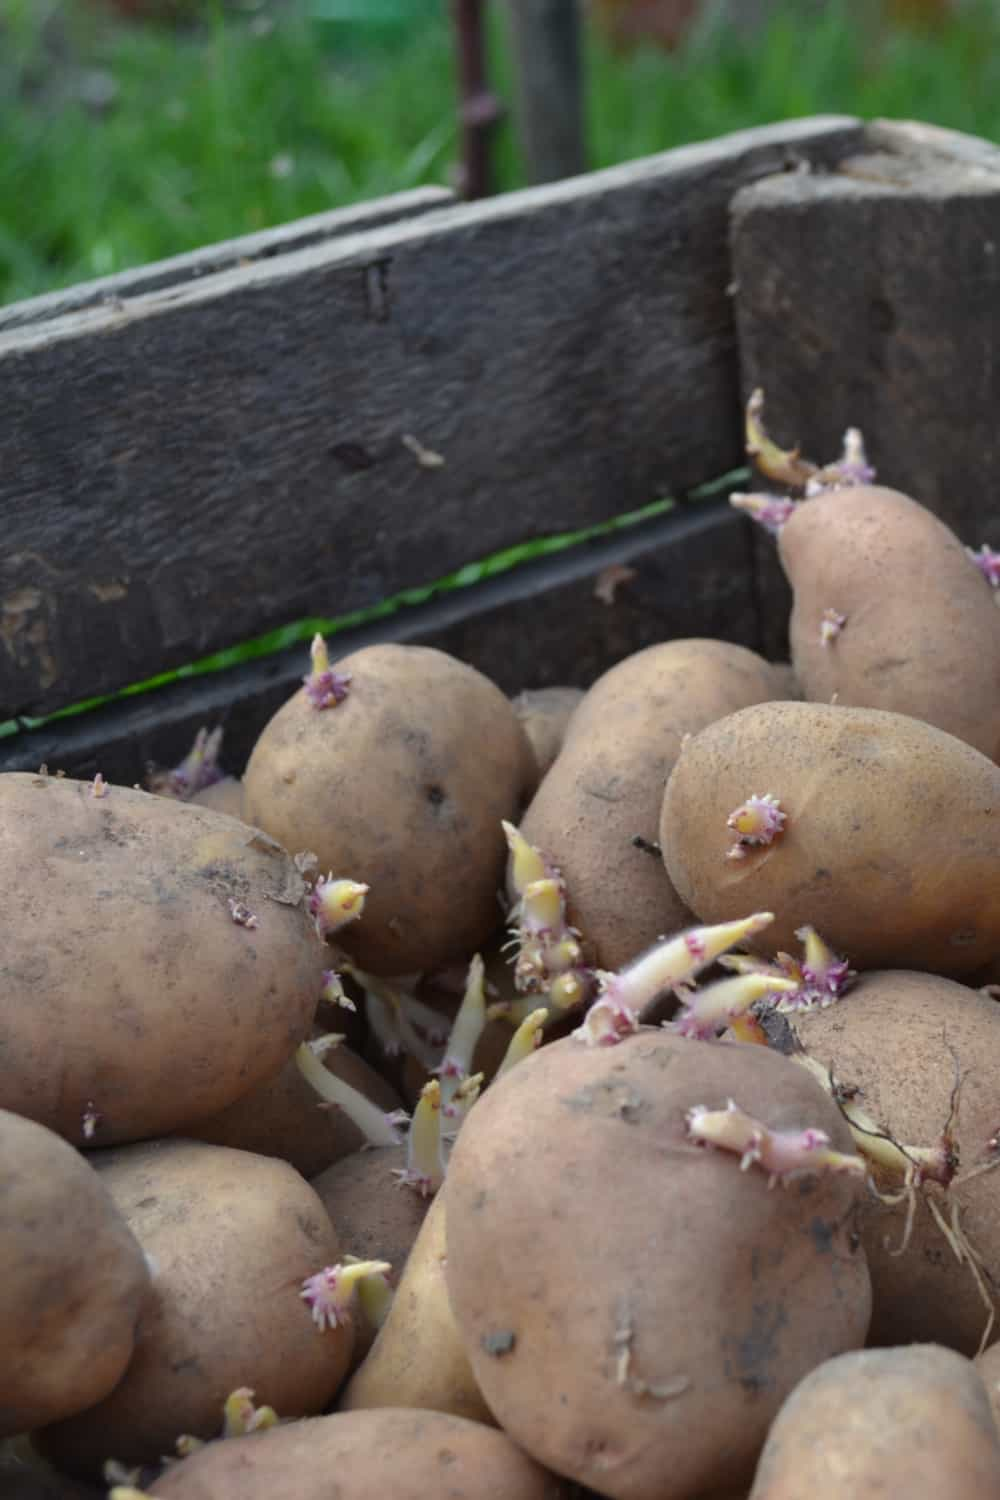 The Risk of Consuming Expired Potatoes